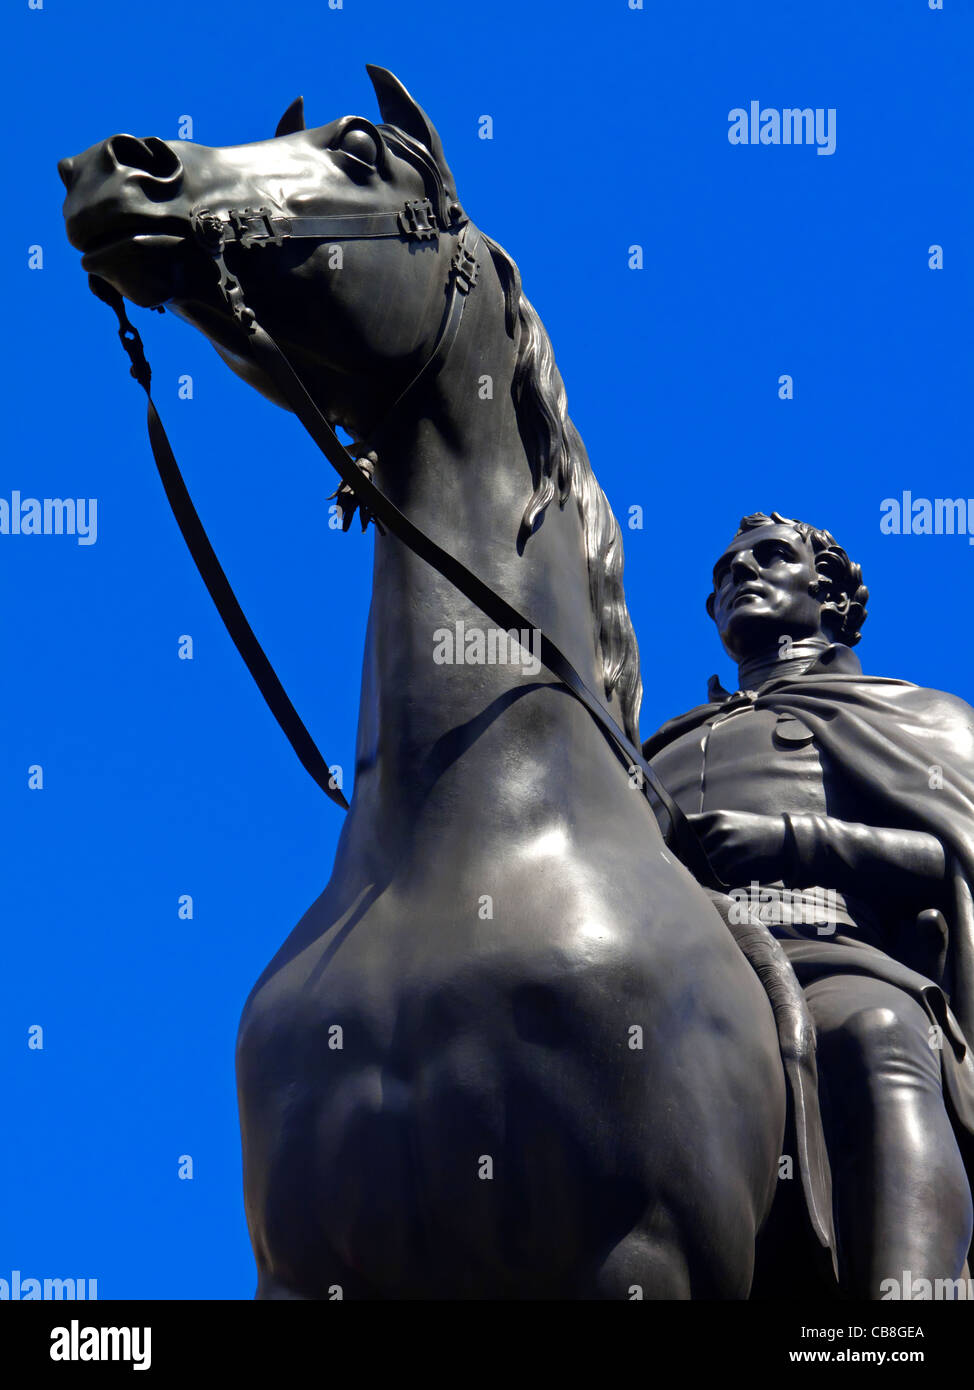 Equestrian Statue of the Duke of Wellington in front of the Bank of England in Threadneedle Street City of London - Stock Image